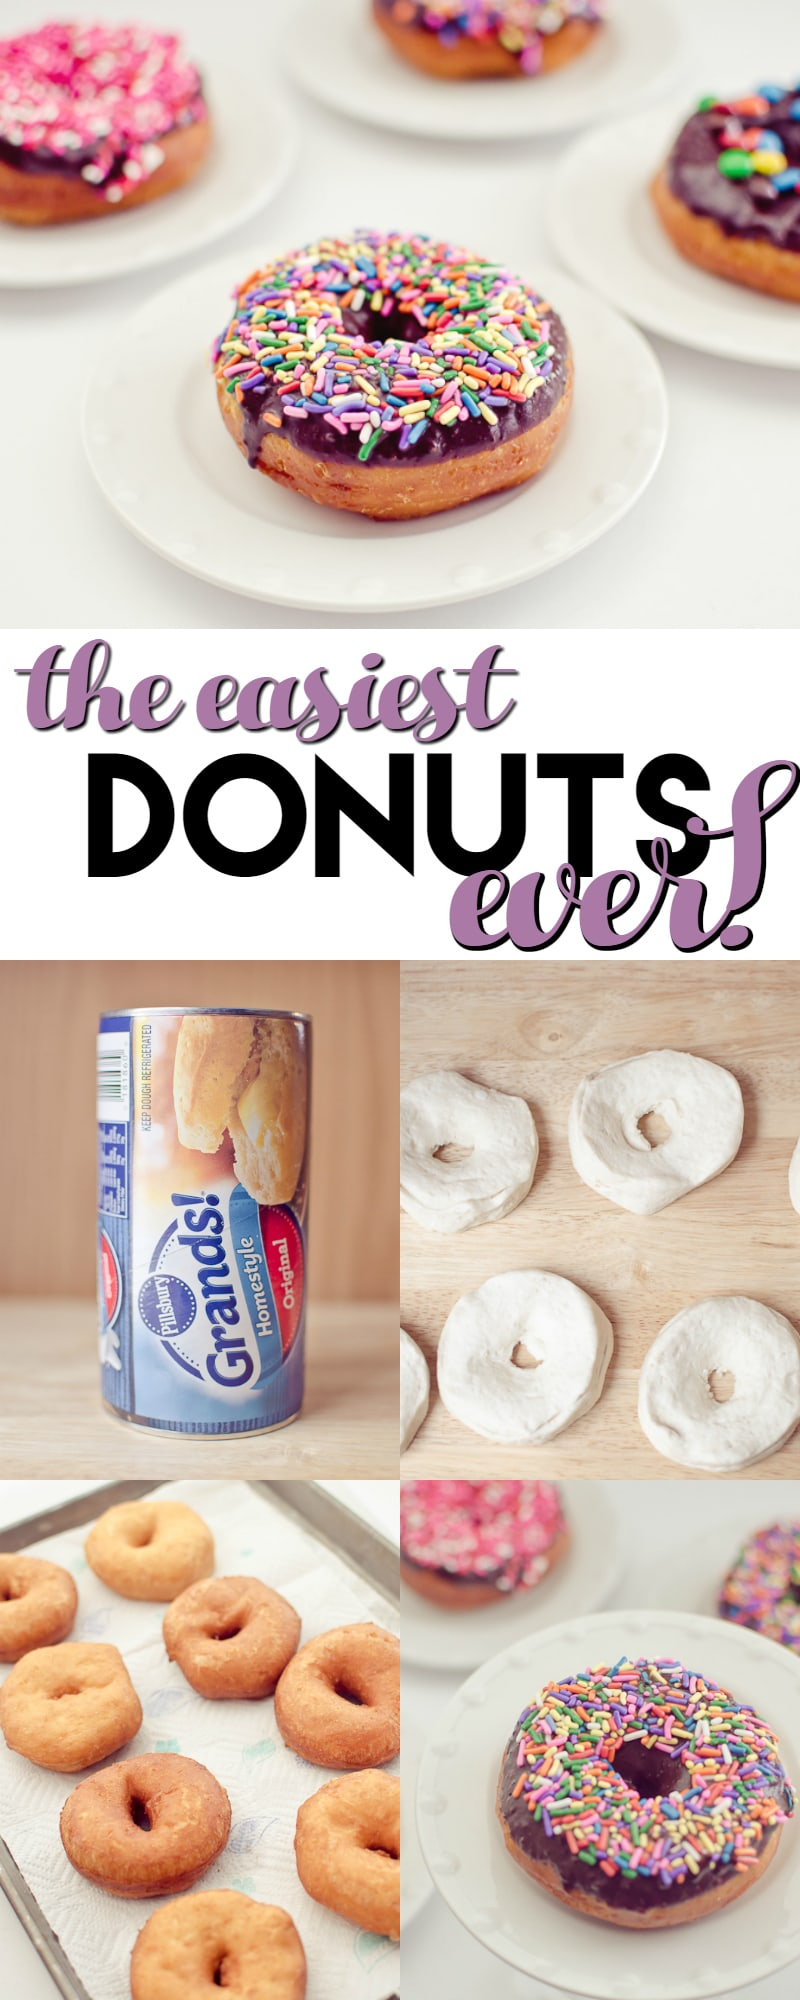 the easiest donuts ever